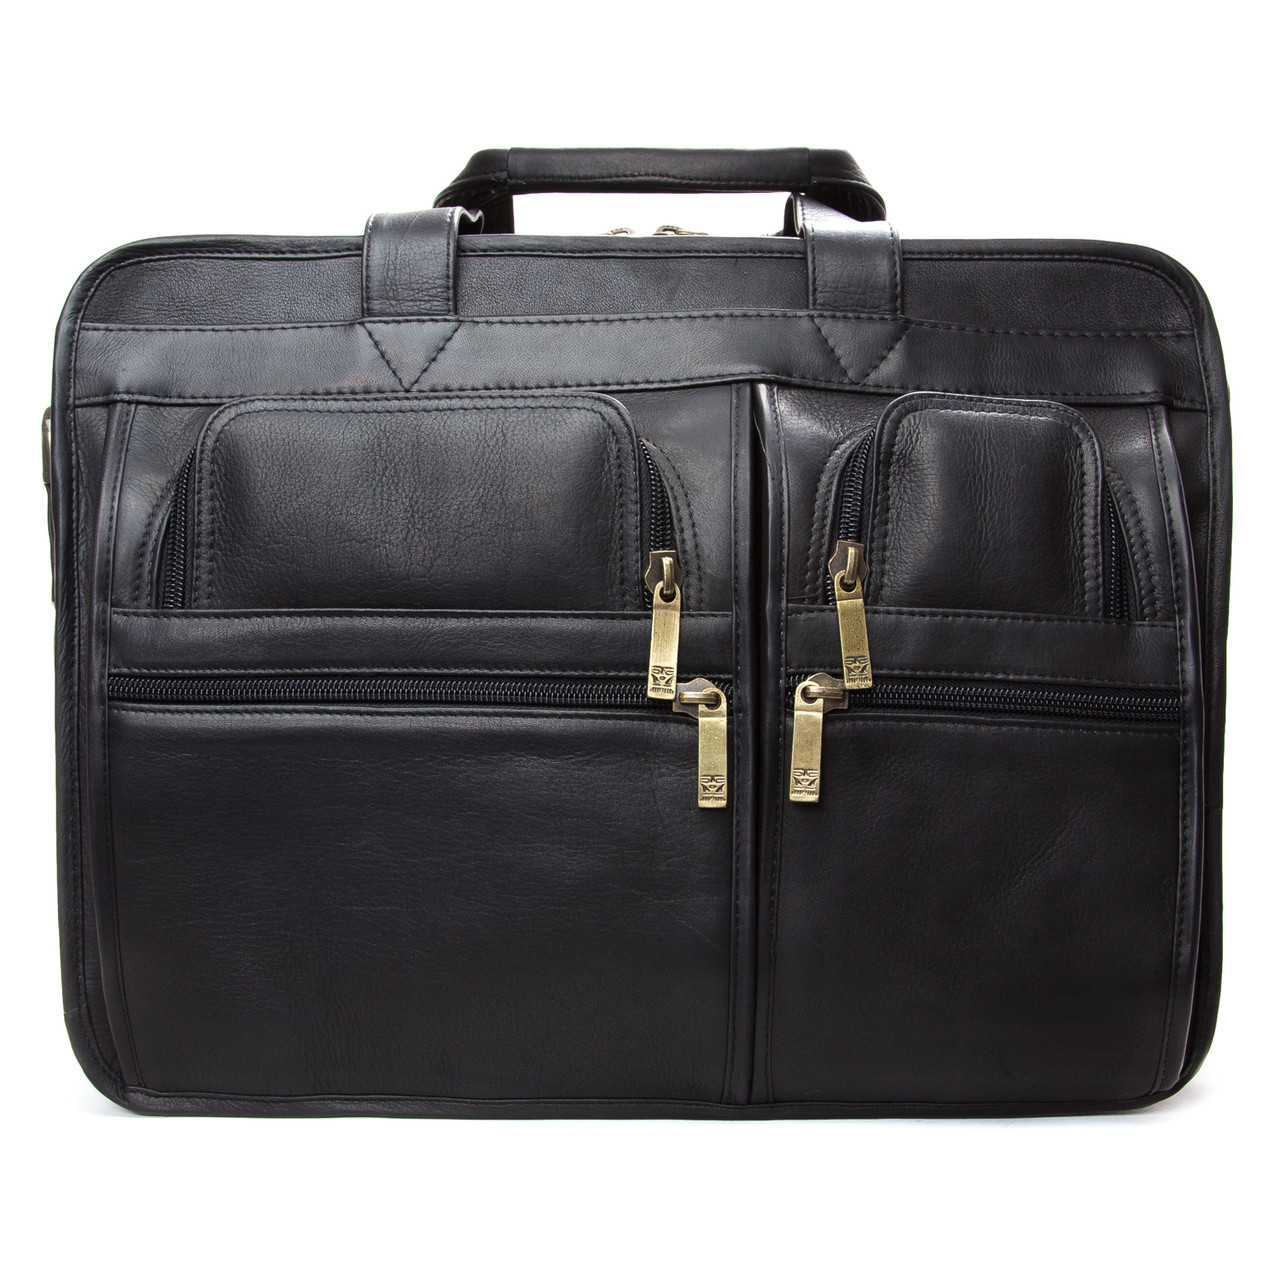 "Muiska - Madrid - 17"" Leather Triple Compartment Laptop Briefcase  - Front View, Black"